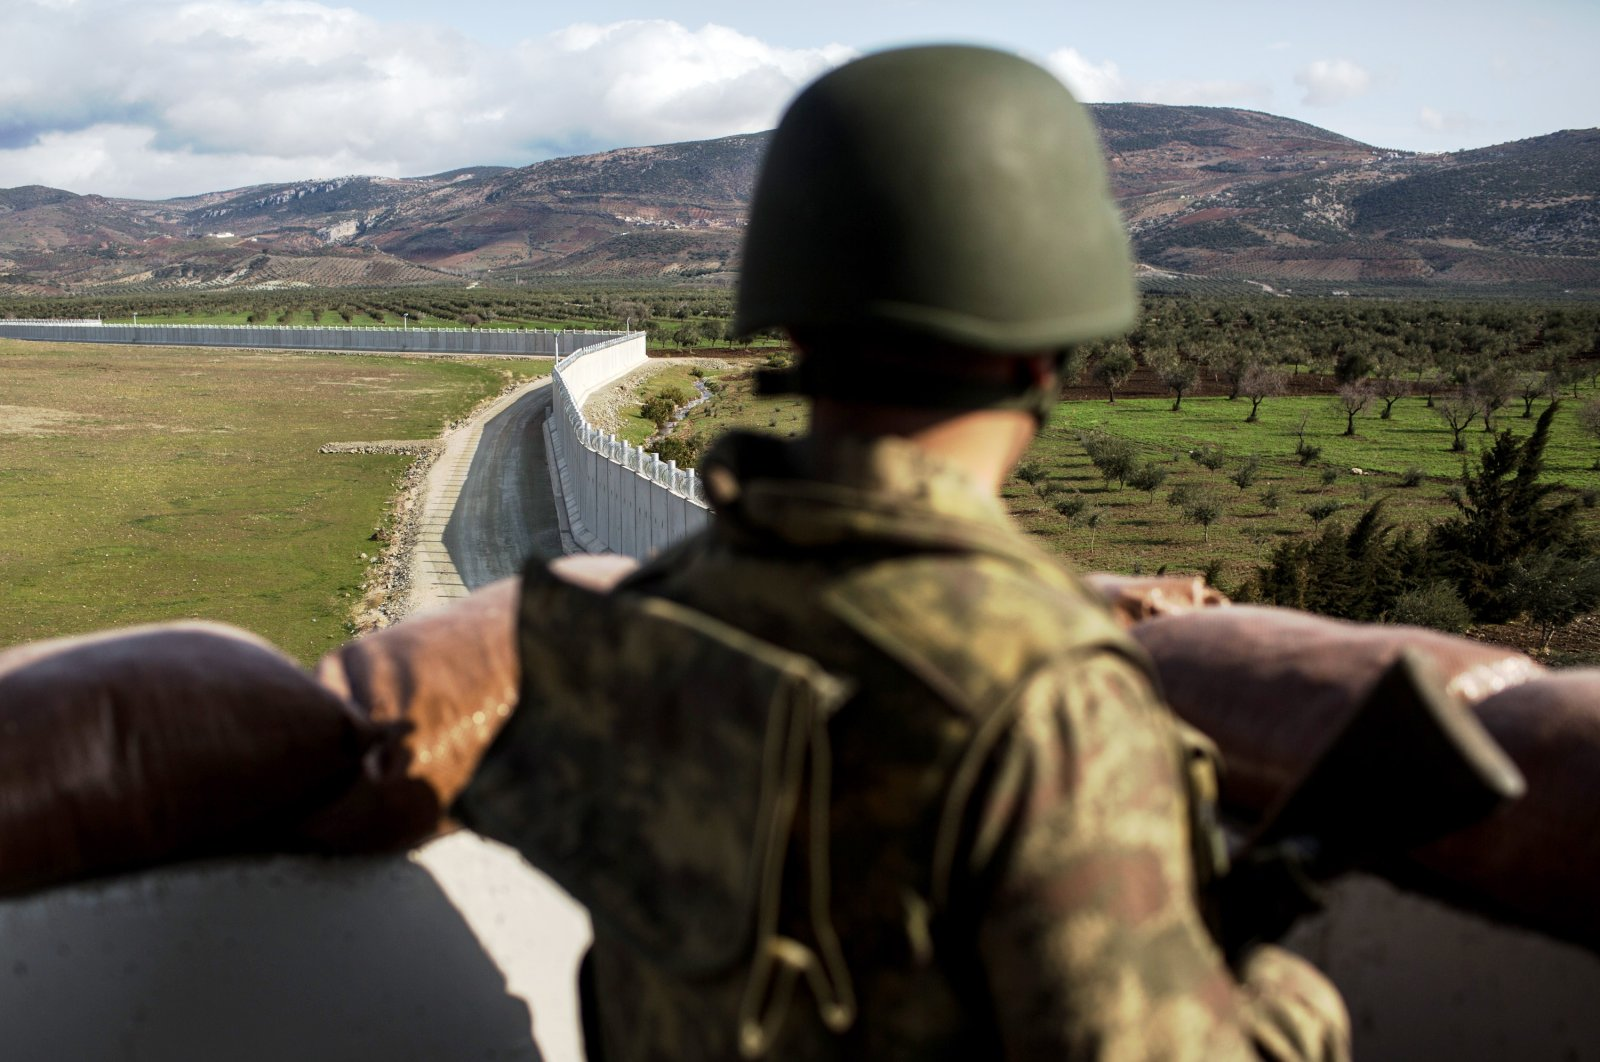 A Turkish soldier from the 1st Border Regiment Command looks out over the border wall to Syria during alert drills at a military outpost on the Turkey-Syria border, Kilis, Turkey, March 2, 2017. (Getty Images)